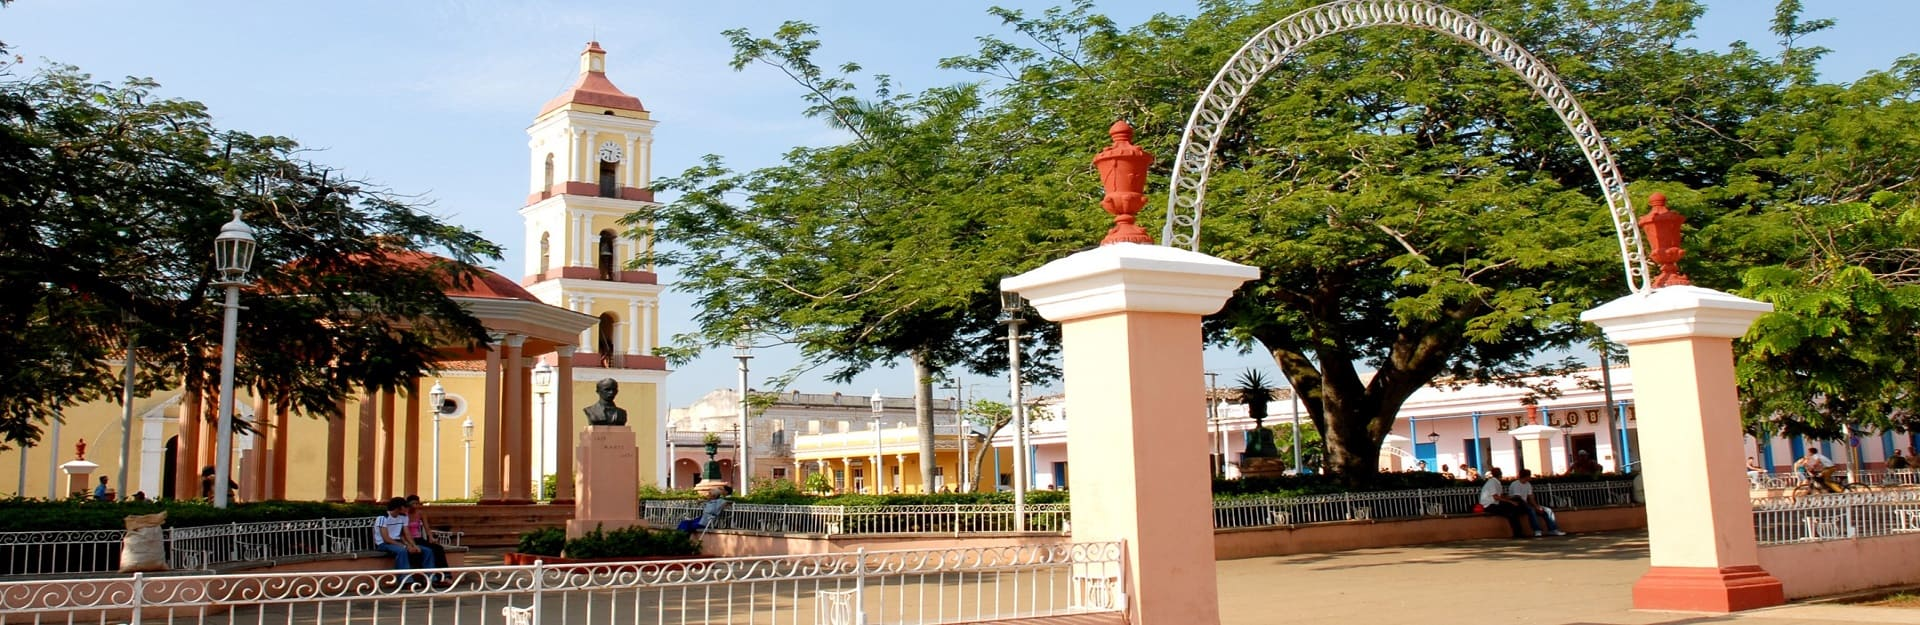 Central square, city of Remedios.